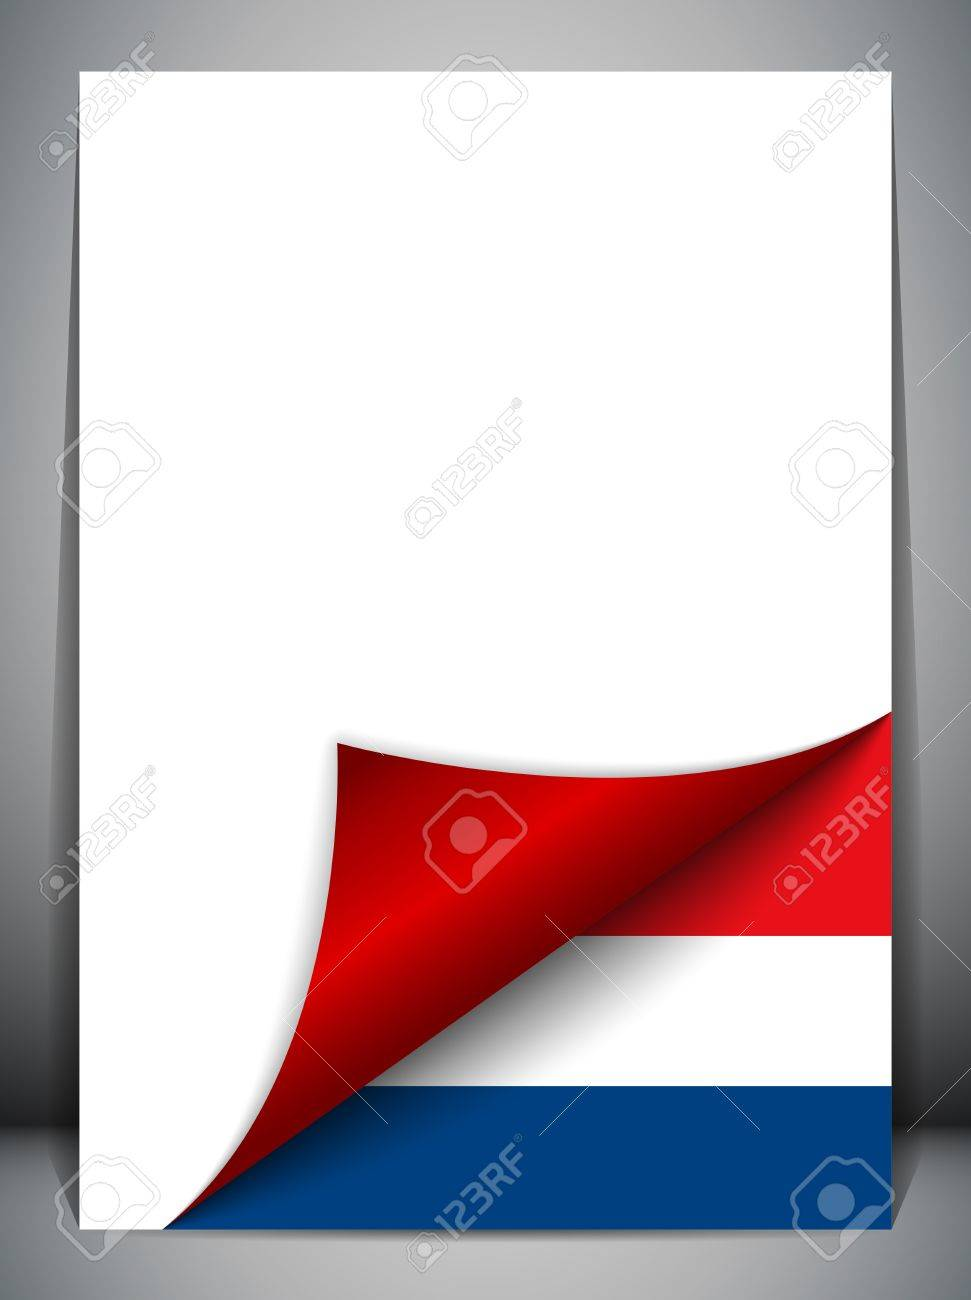 Netherlands Country Flag Turning Page Stock Vector - 16659247